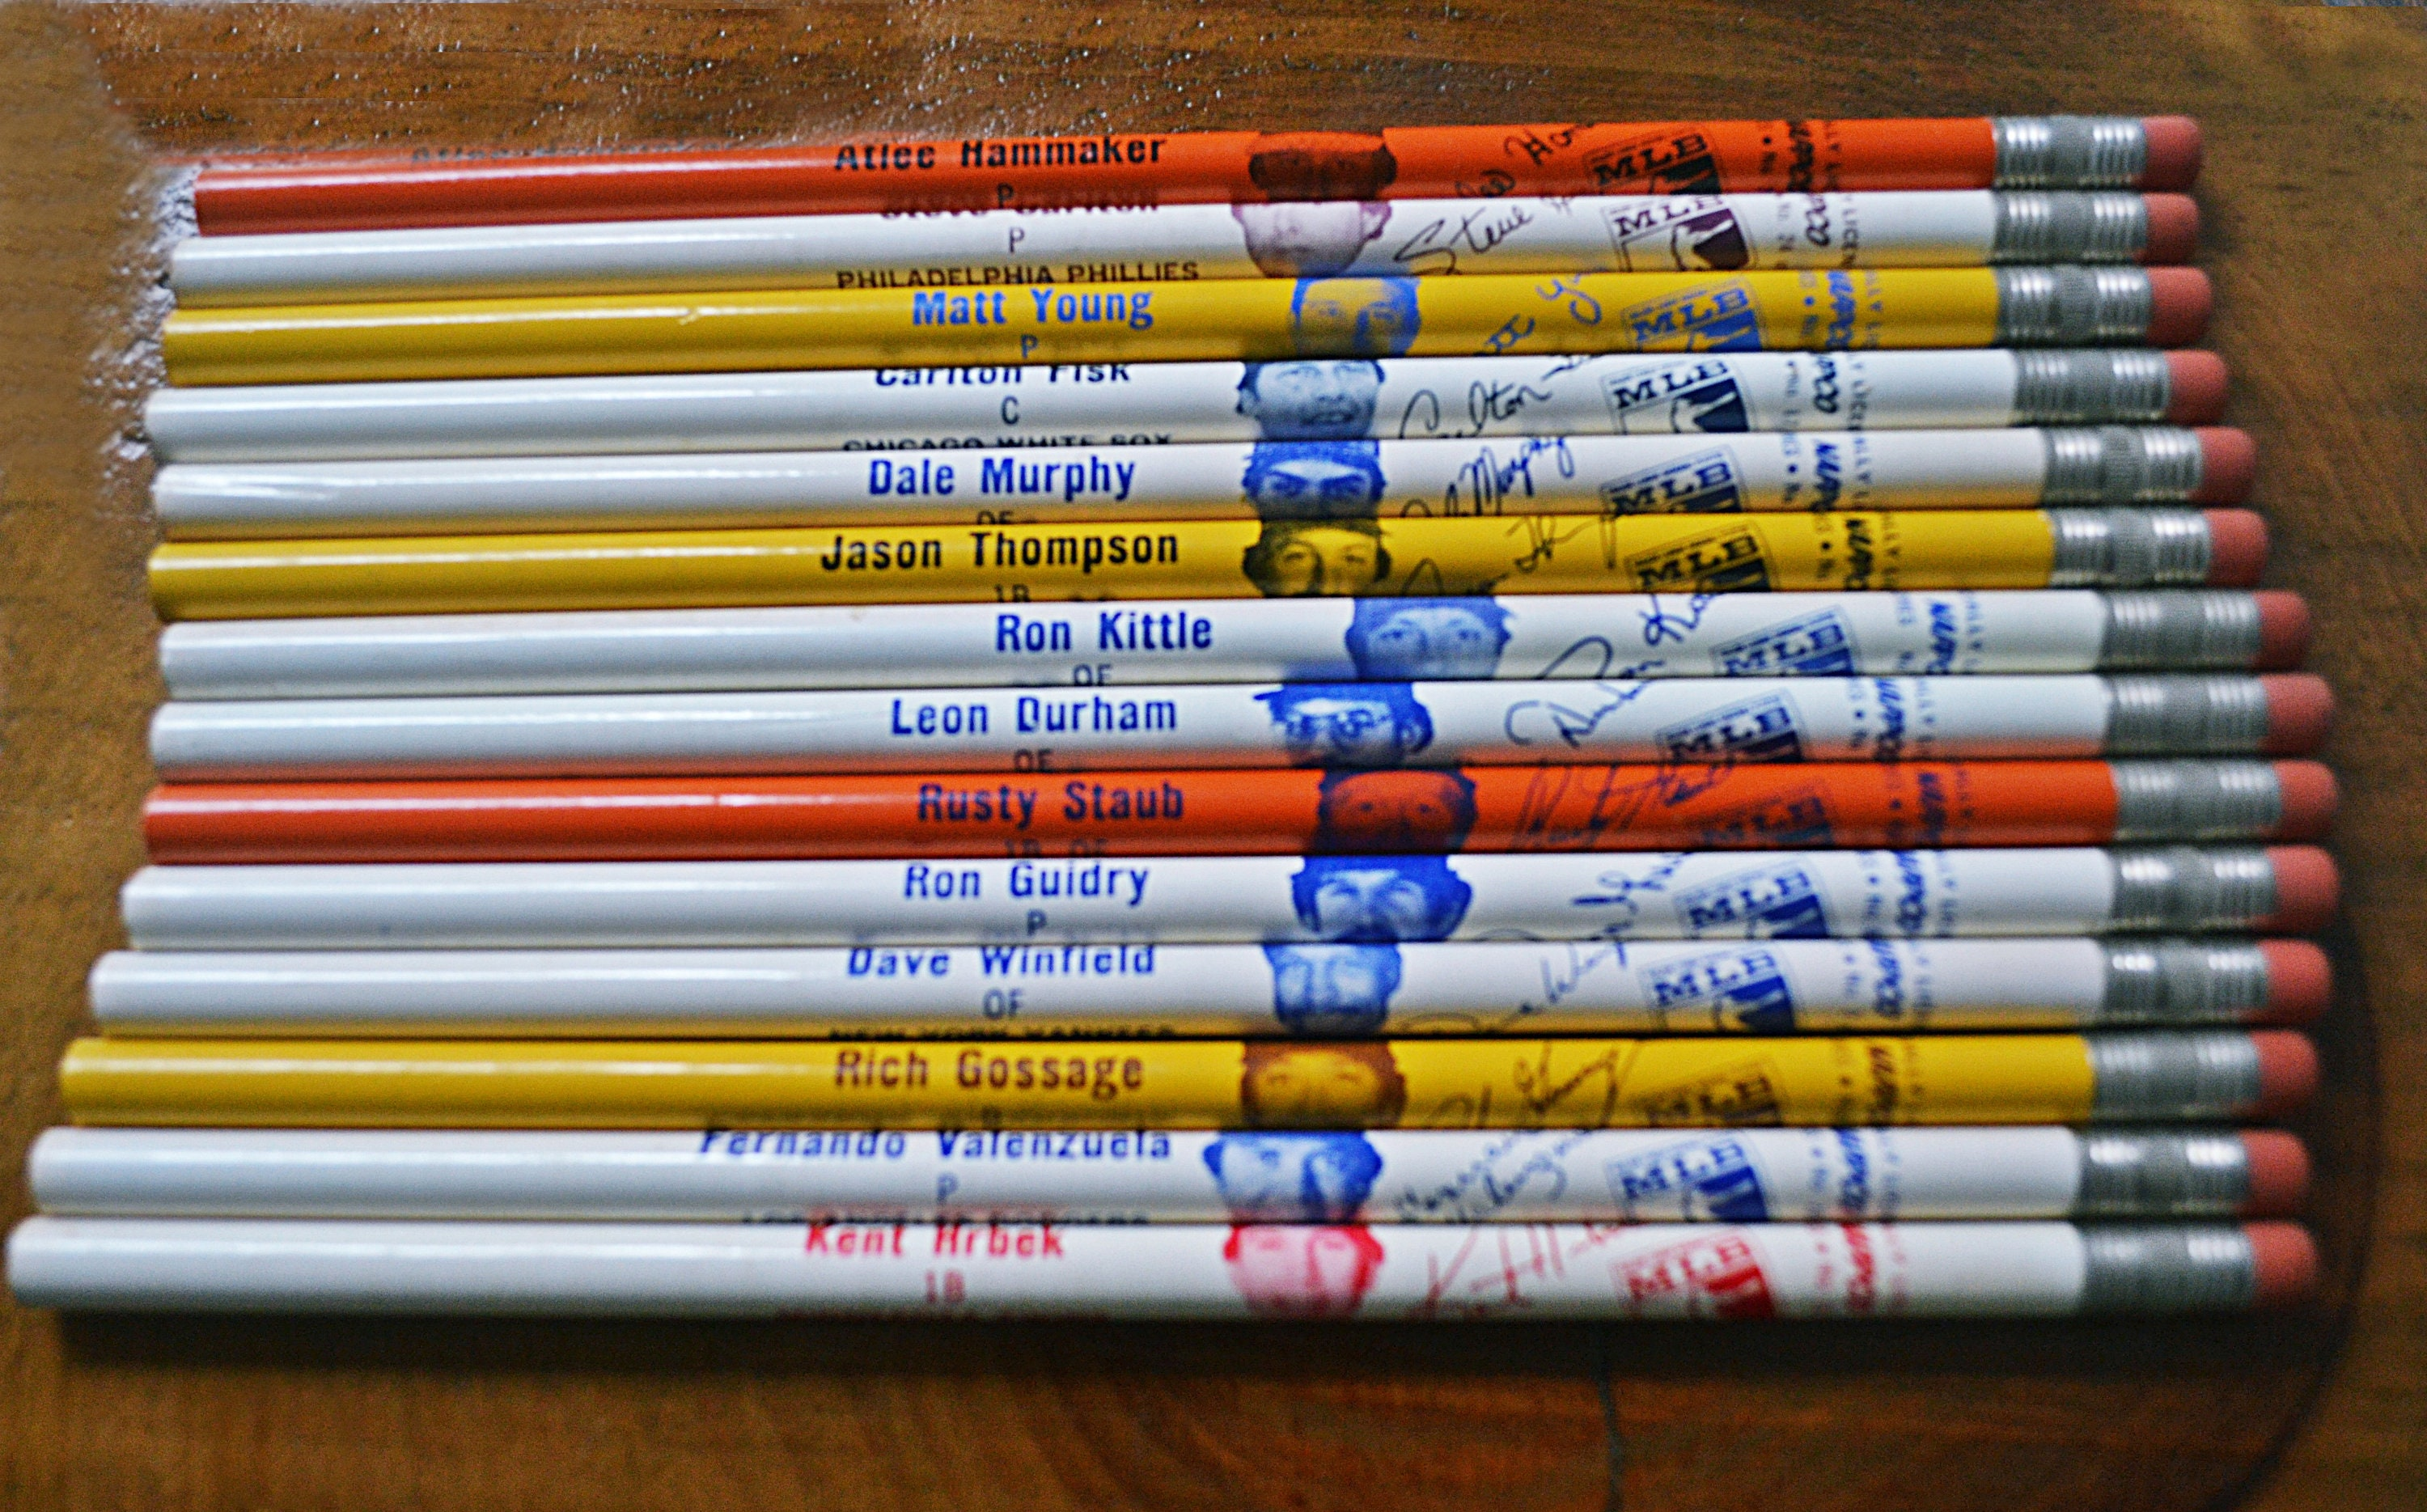 Pencils   Free Stock Photo   Colored pencils in a circle